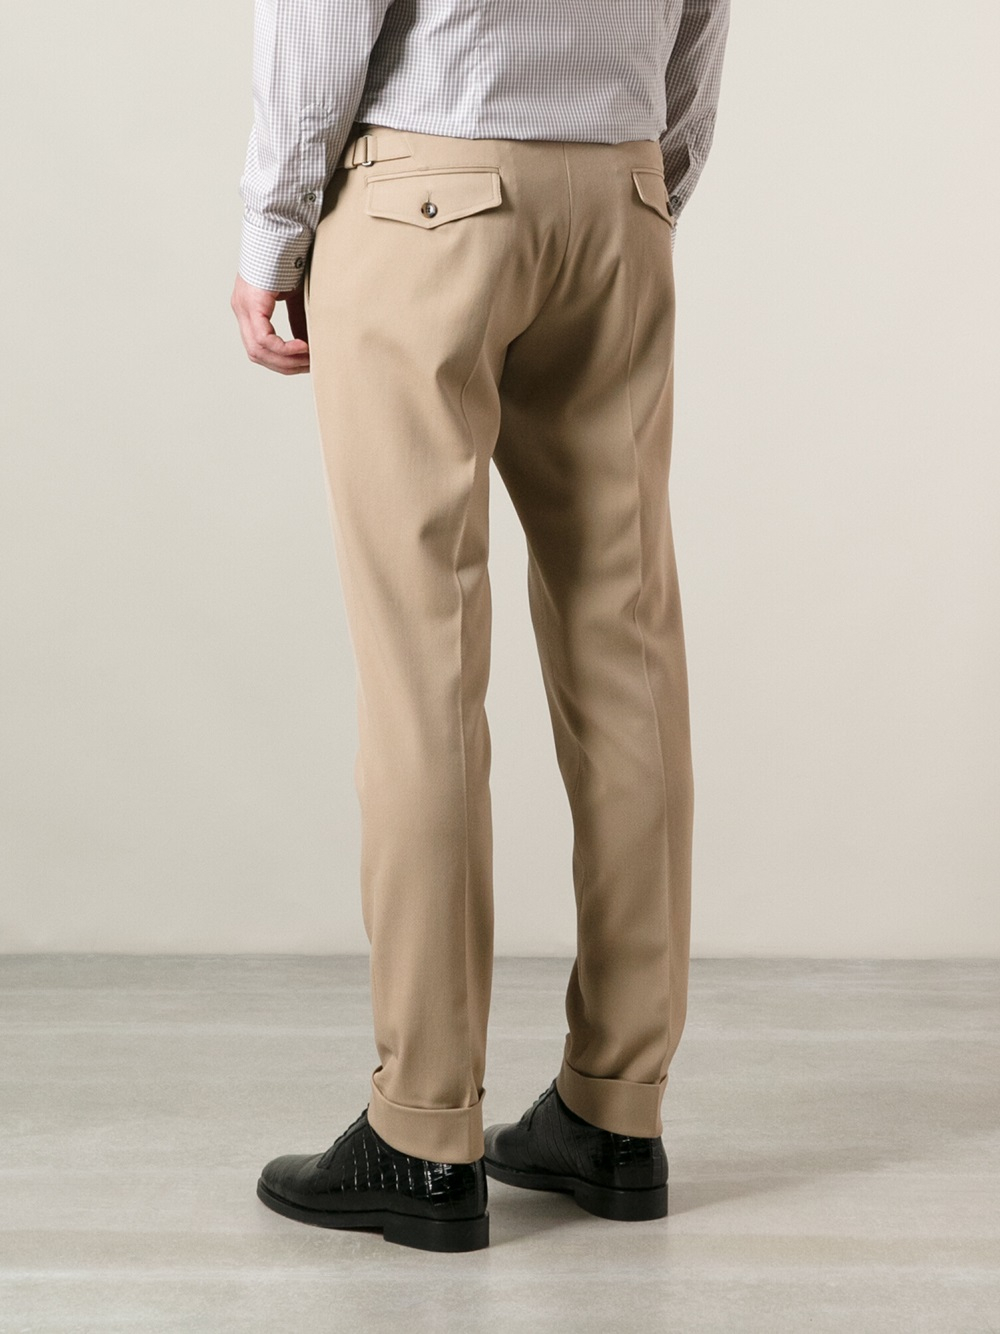 Shop men's pants and find everything from men's corduroy pants and khakis to chino pants and men's joggers. Ralph Lauren Pants & Chinos. View All. Go to previous page; 1 / 5 ; Next Page; Take 30% off color (4) Stretch Classic Fit Chino $ Take 30% off Polo Ralph Lauren Classic Fit Embroidered Chino .